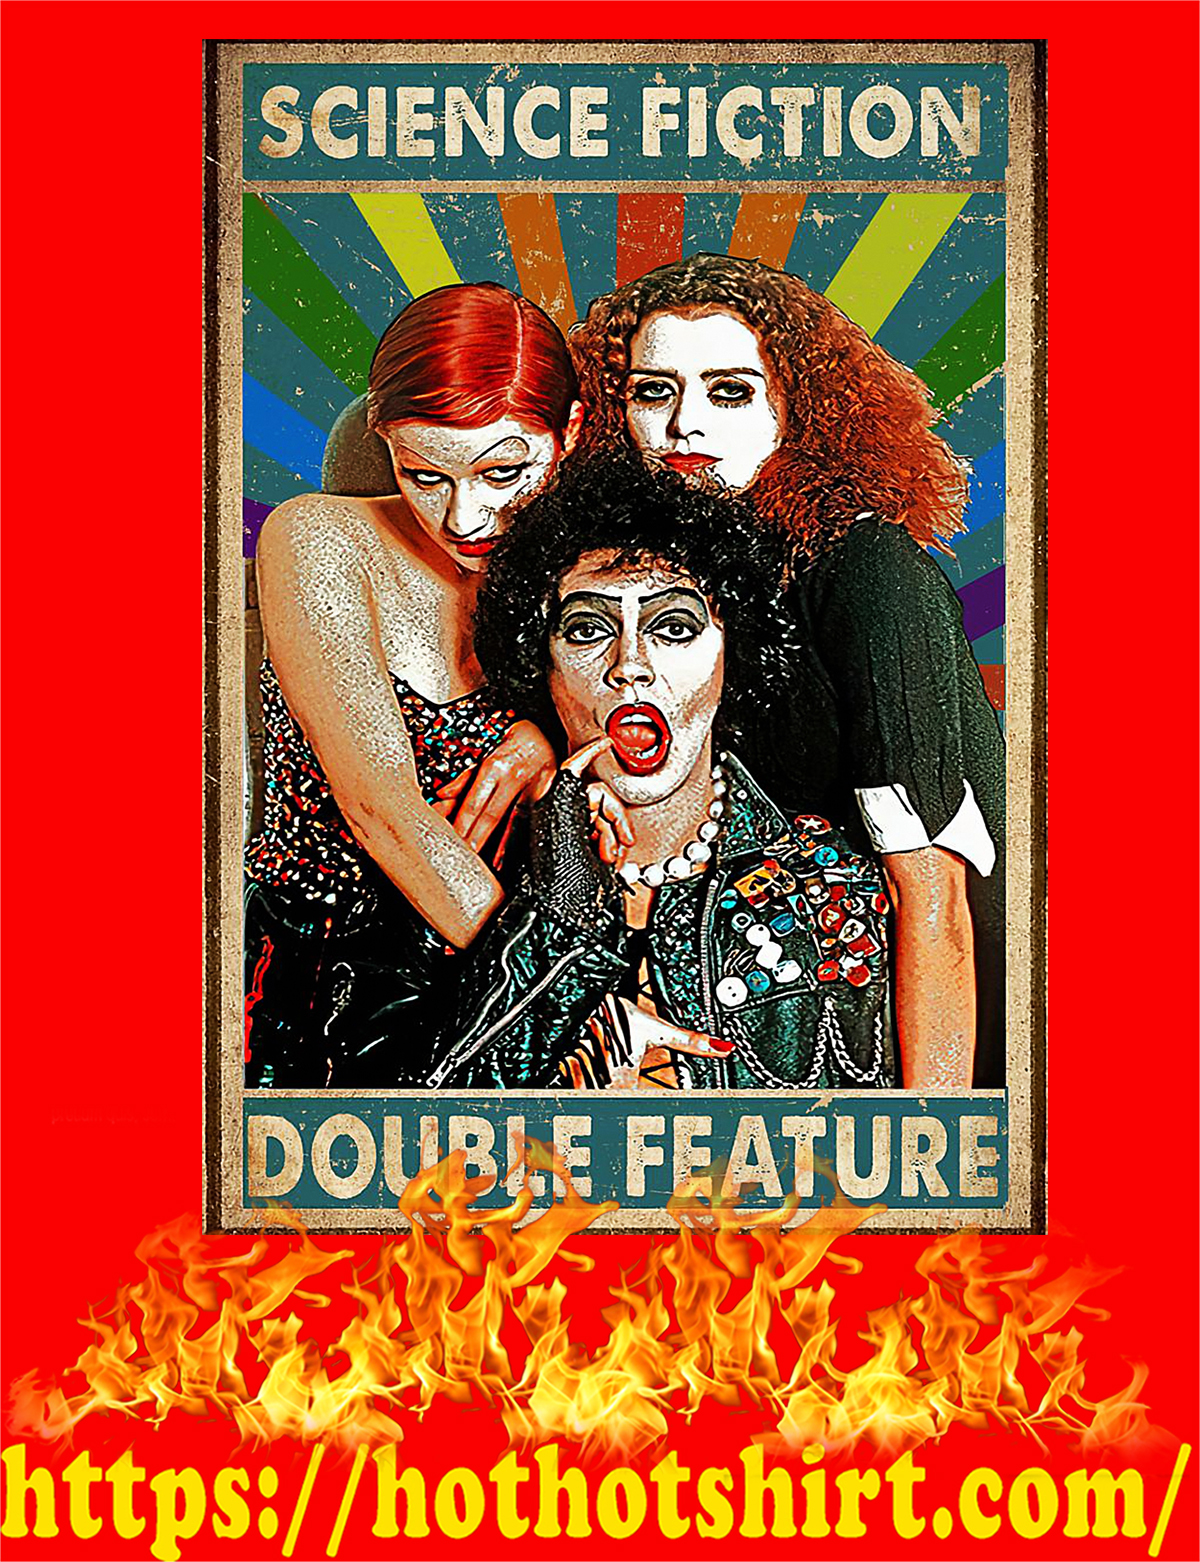 Rocky horror science fiction double feature poster - A4